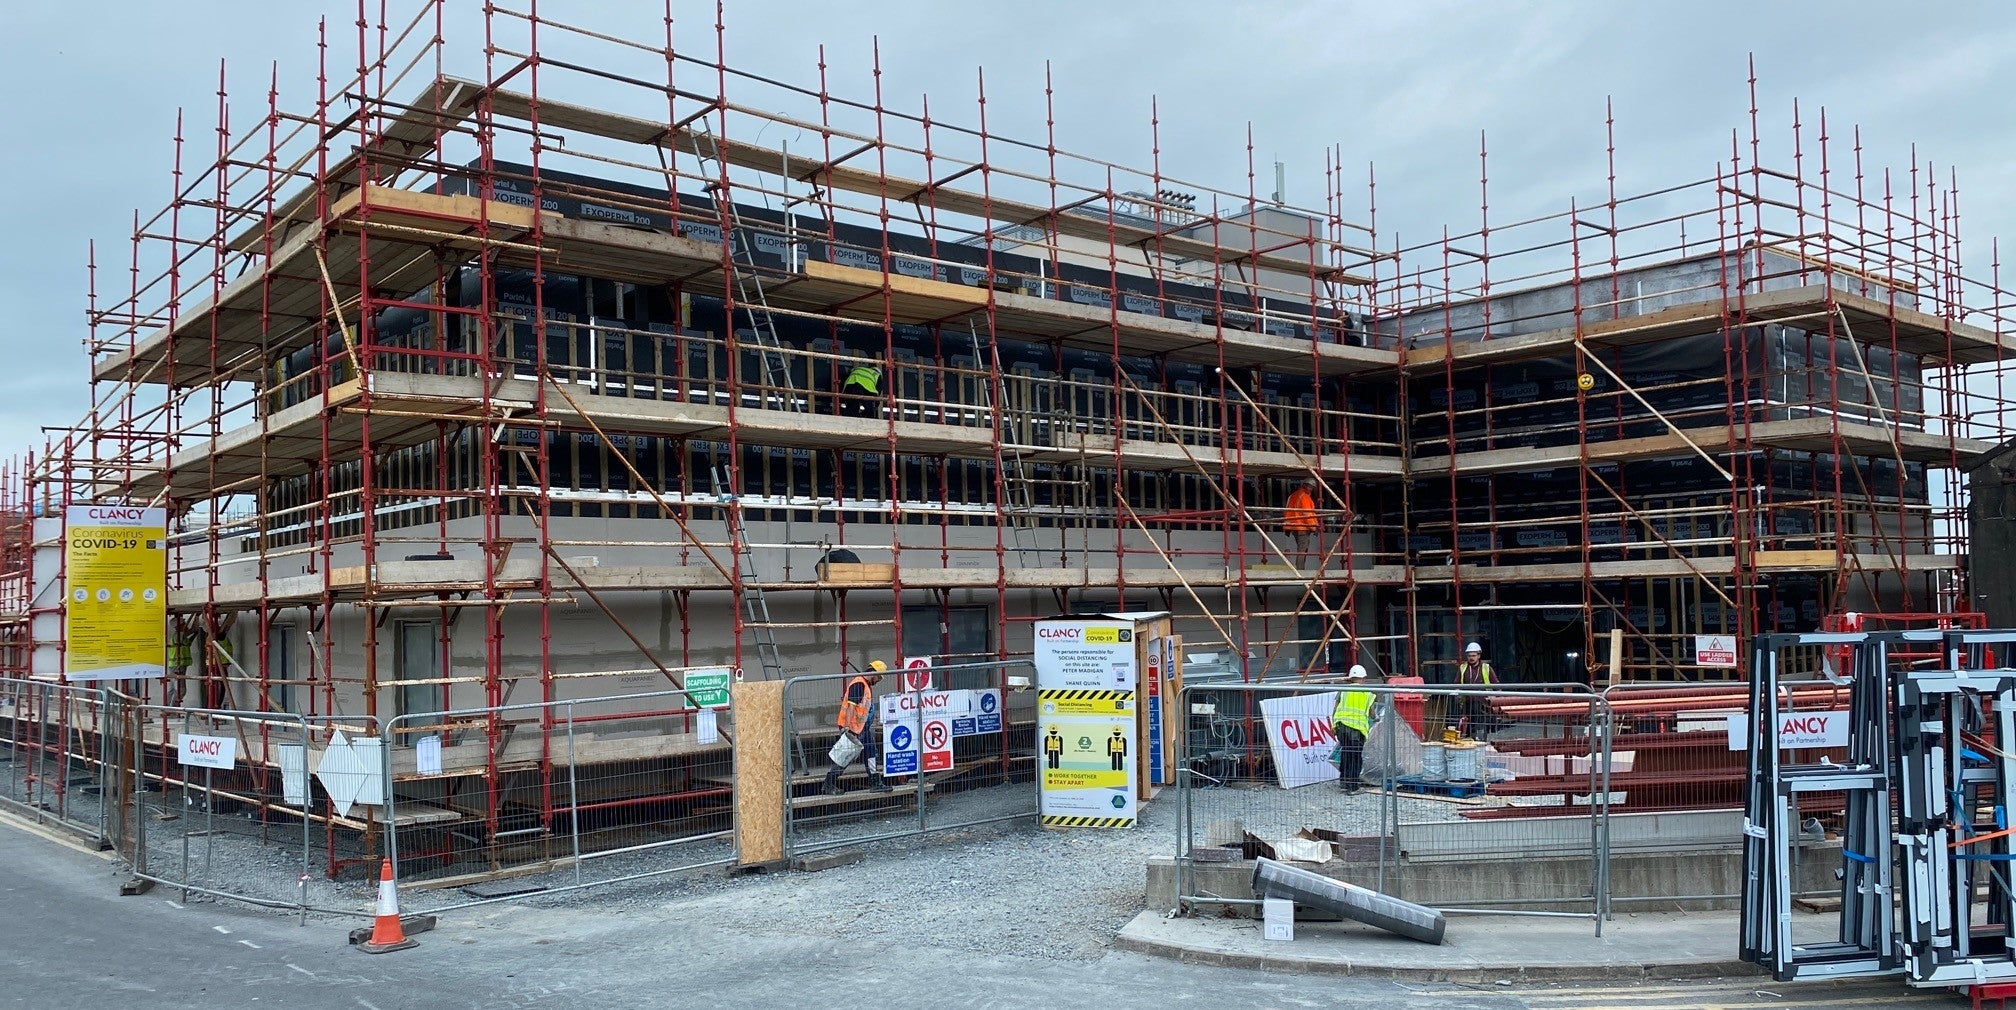 EXOPERM™ MONO DURO 200 Fire-Rated Membrane Contributes to the Extension of University Hospital Limerick, as part of Covid-19 efforts